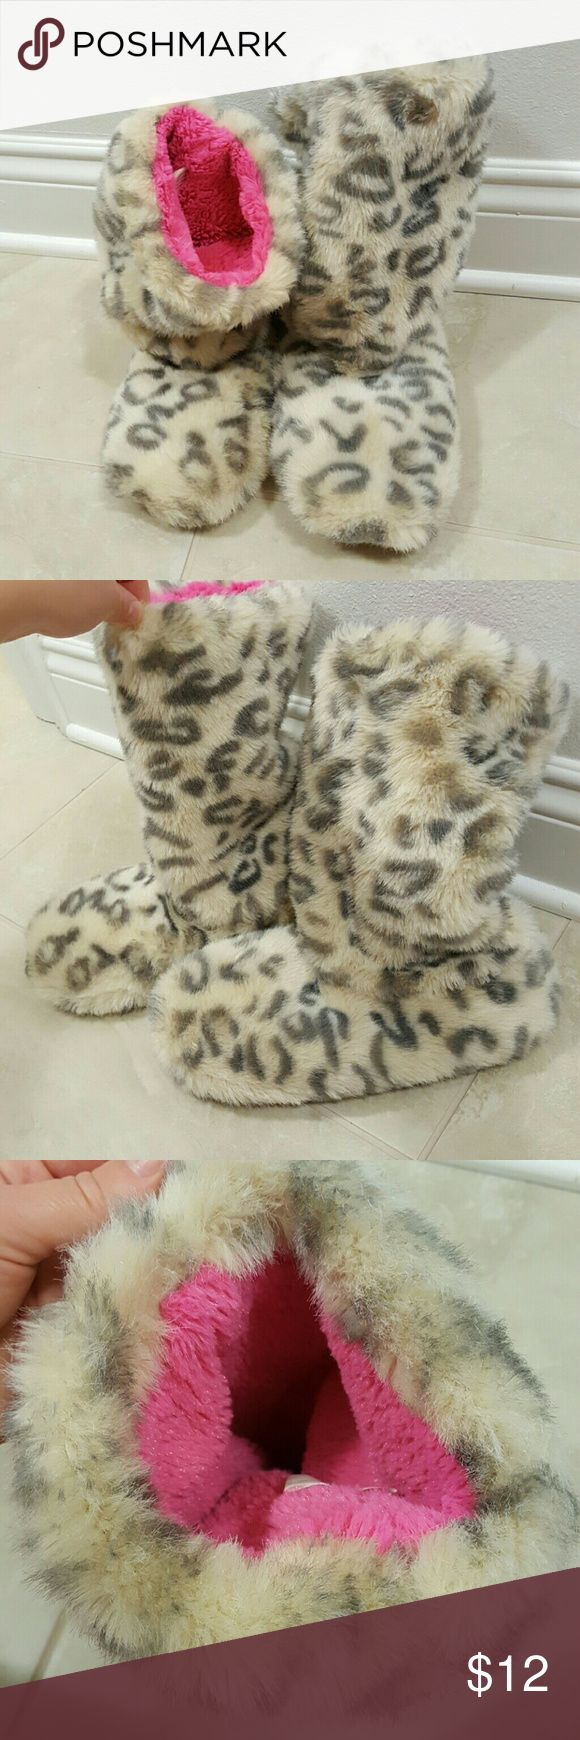 Animal print fuzzy slippers Super cute and fuzzy slipper booties great for winter.  New without tags! Shoes Slippers